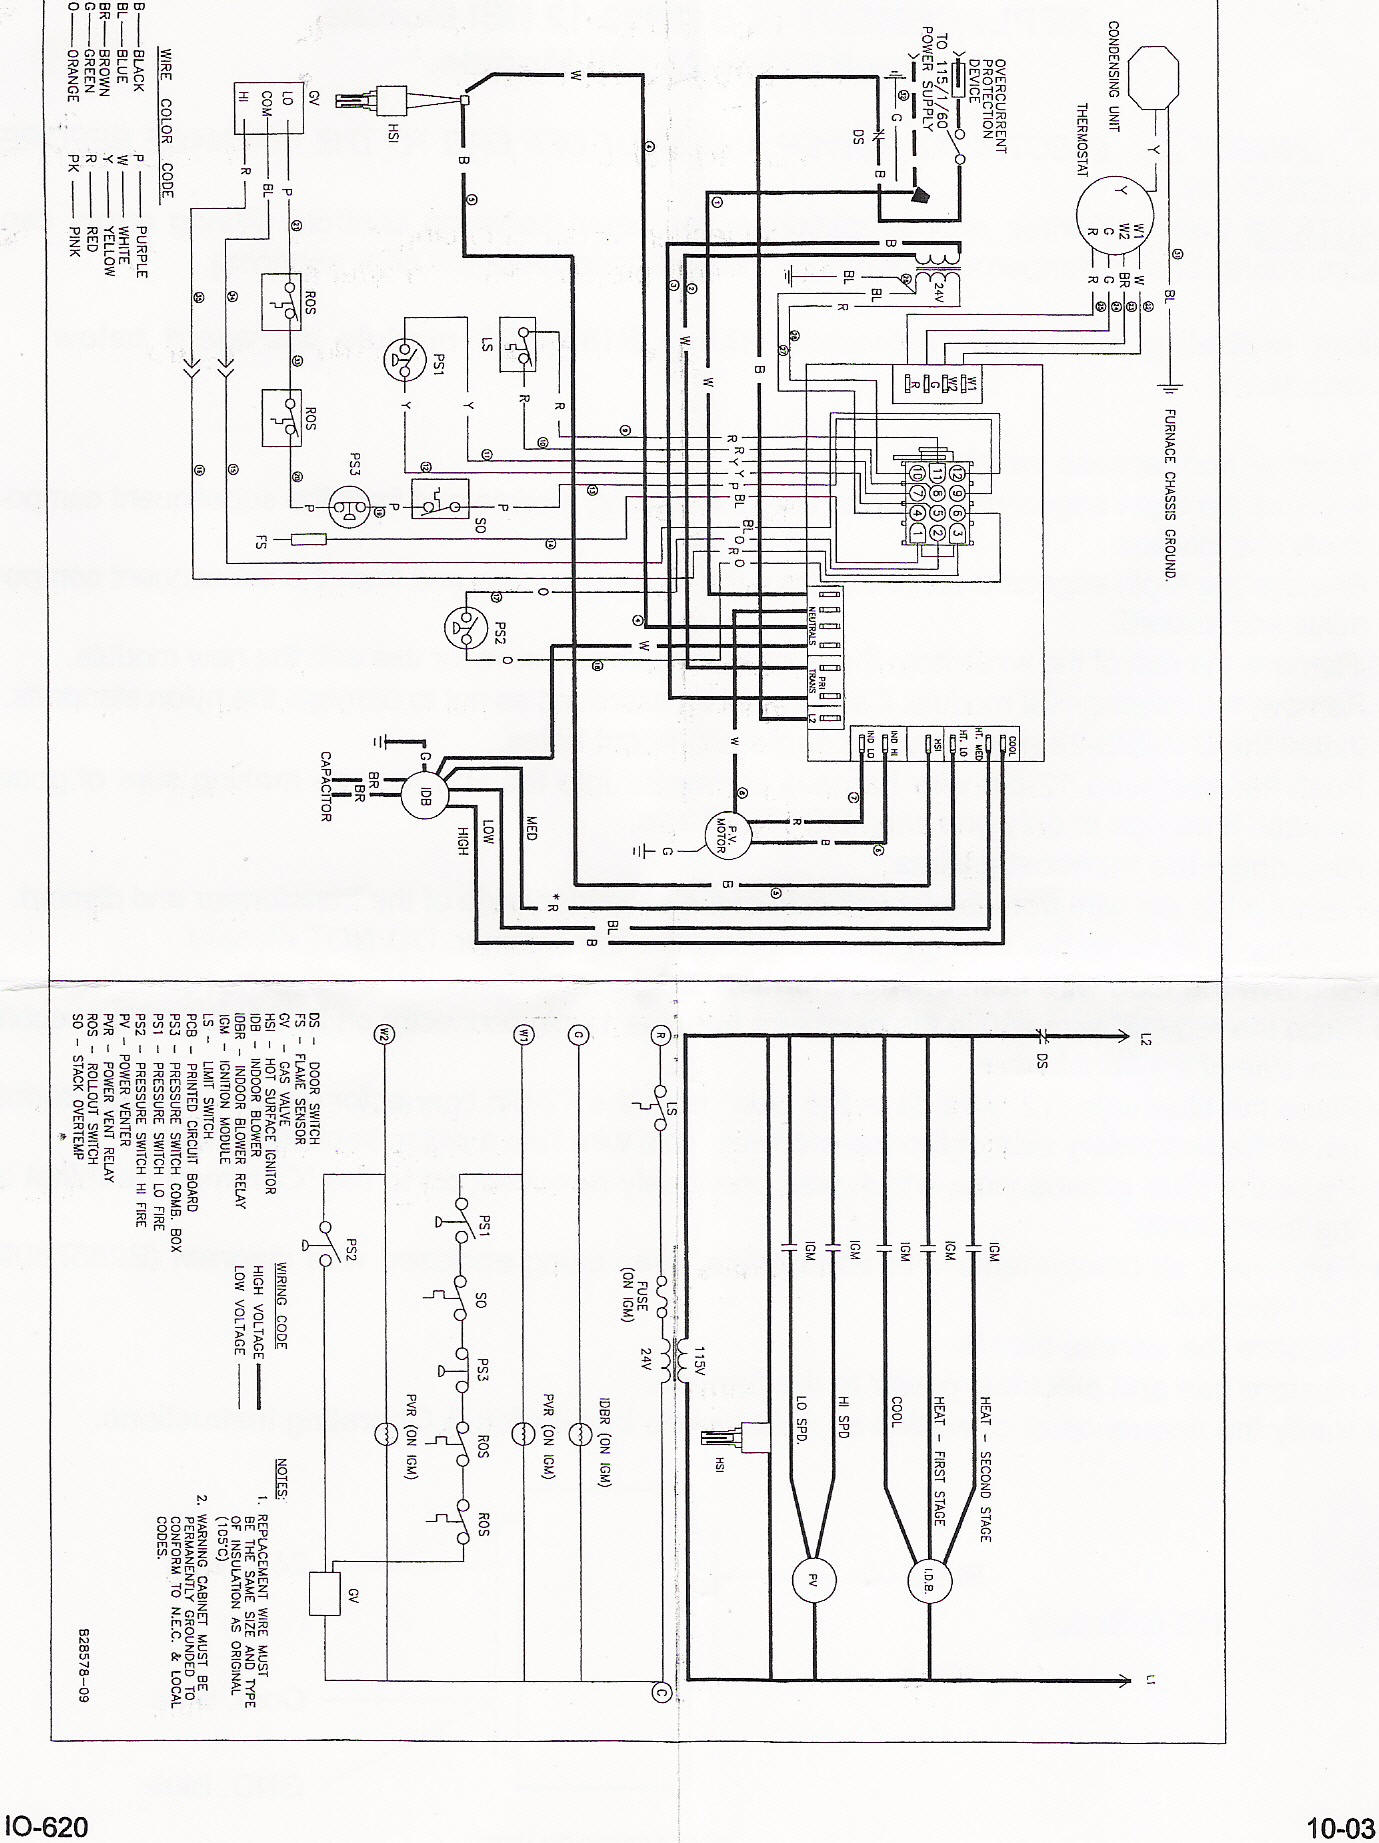 goodma2 instr goodman control board b18099 23 instructions nordyne control board wiring diagram at mifinder.co